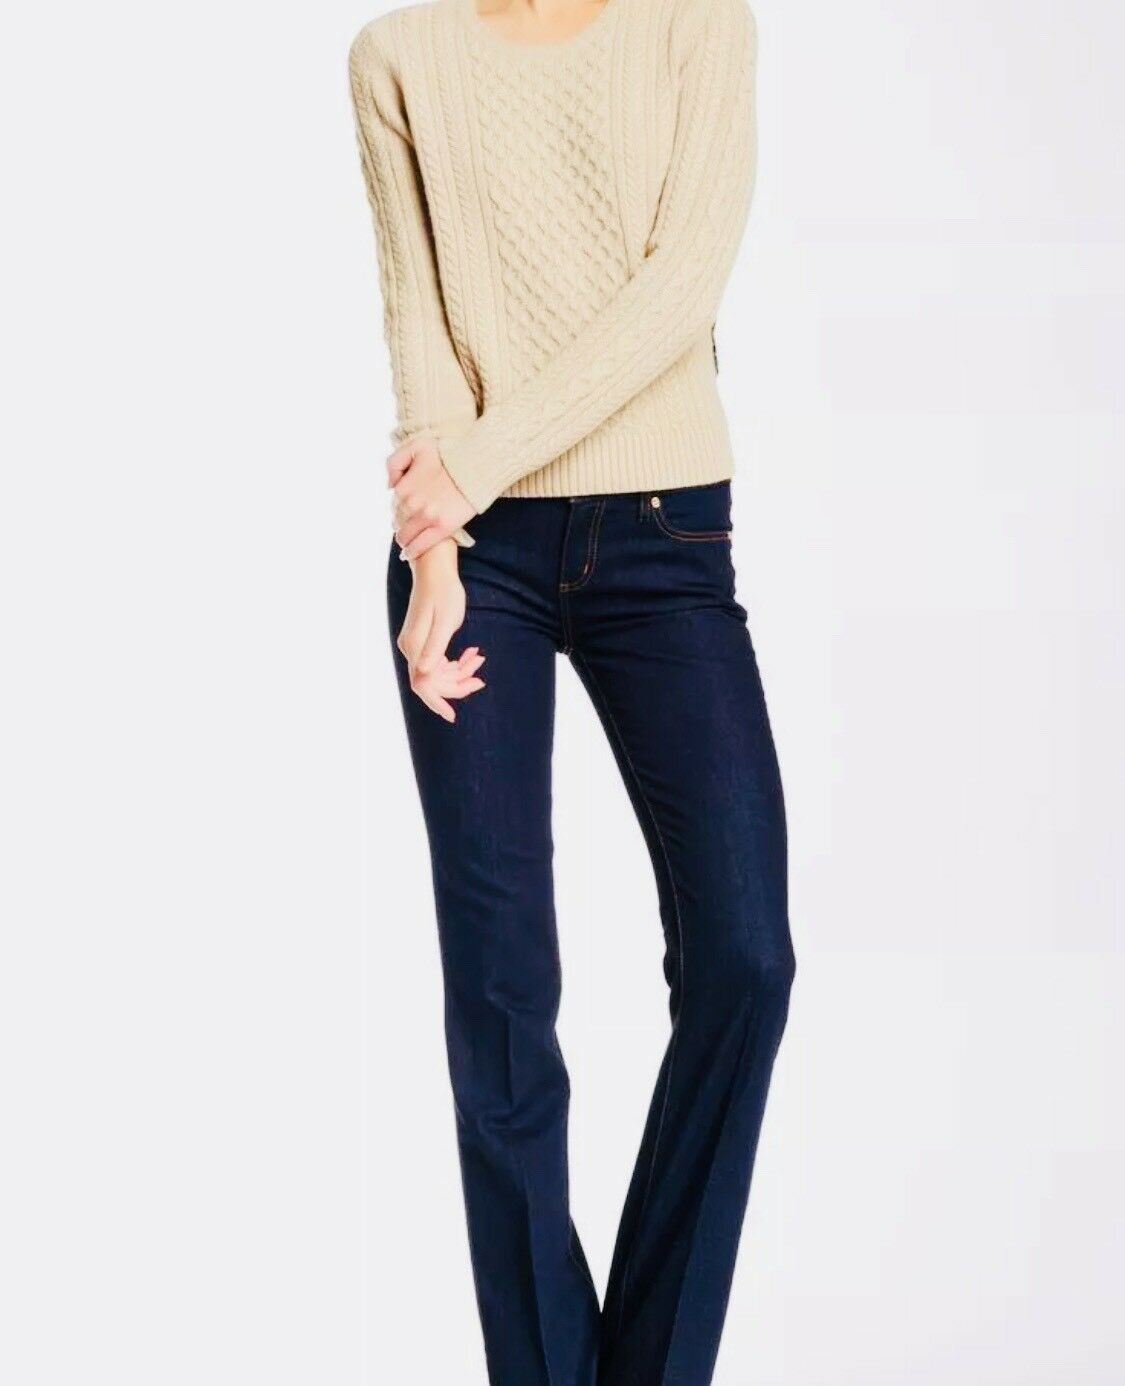 TORY BURCH Classic Boot Cut Cropped bluee Jeans Stretch  Pants NWT SZ 29